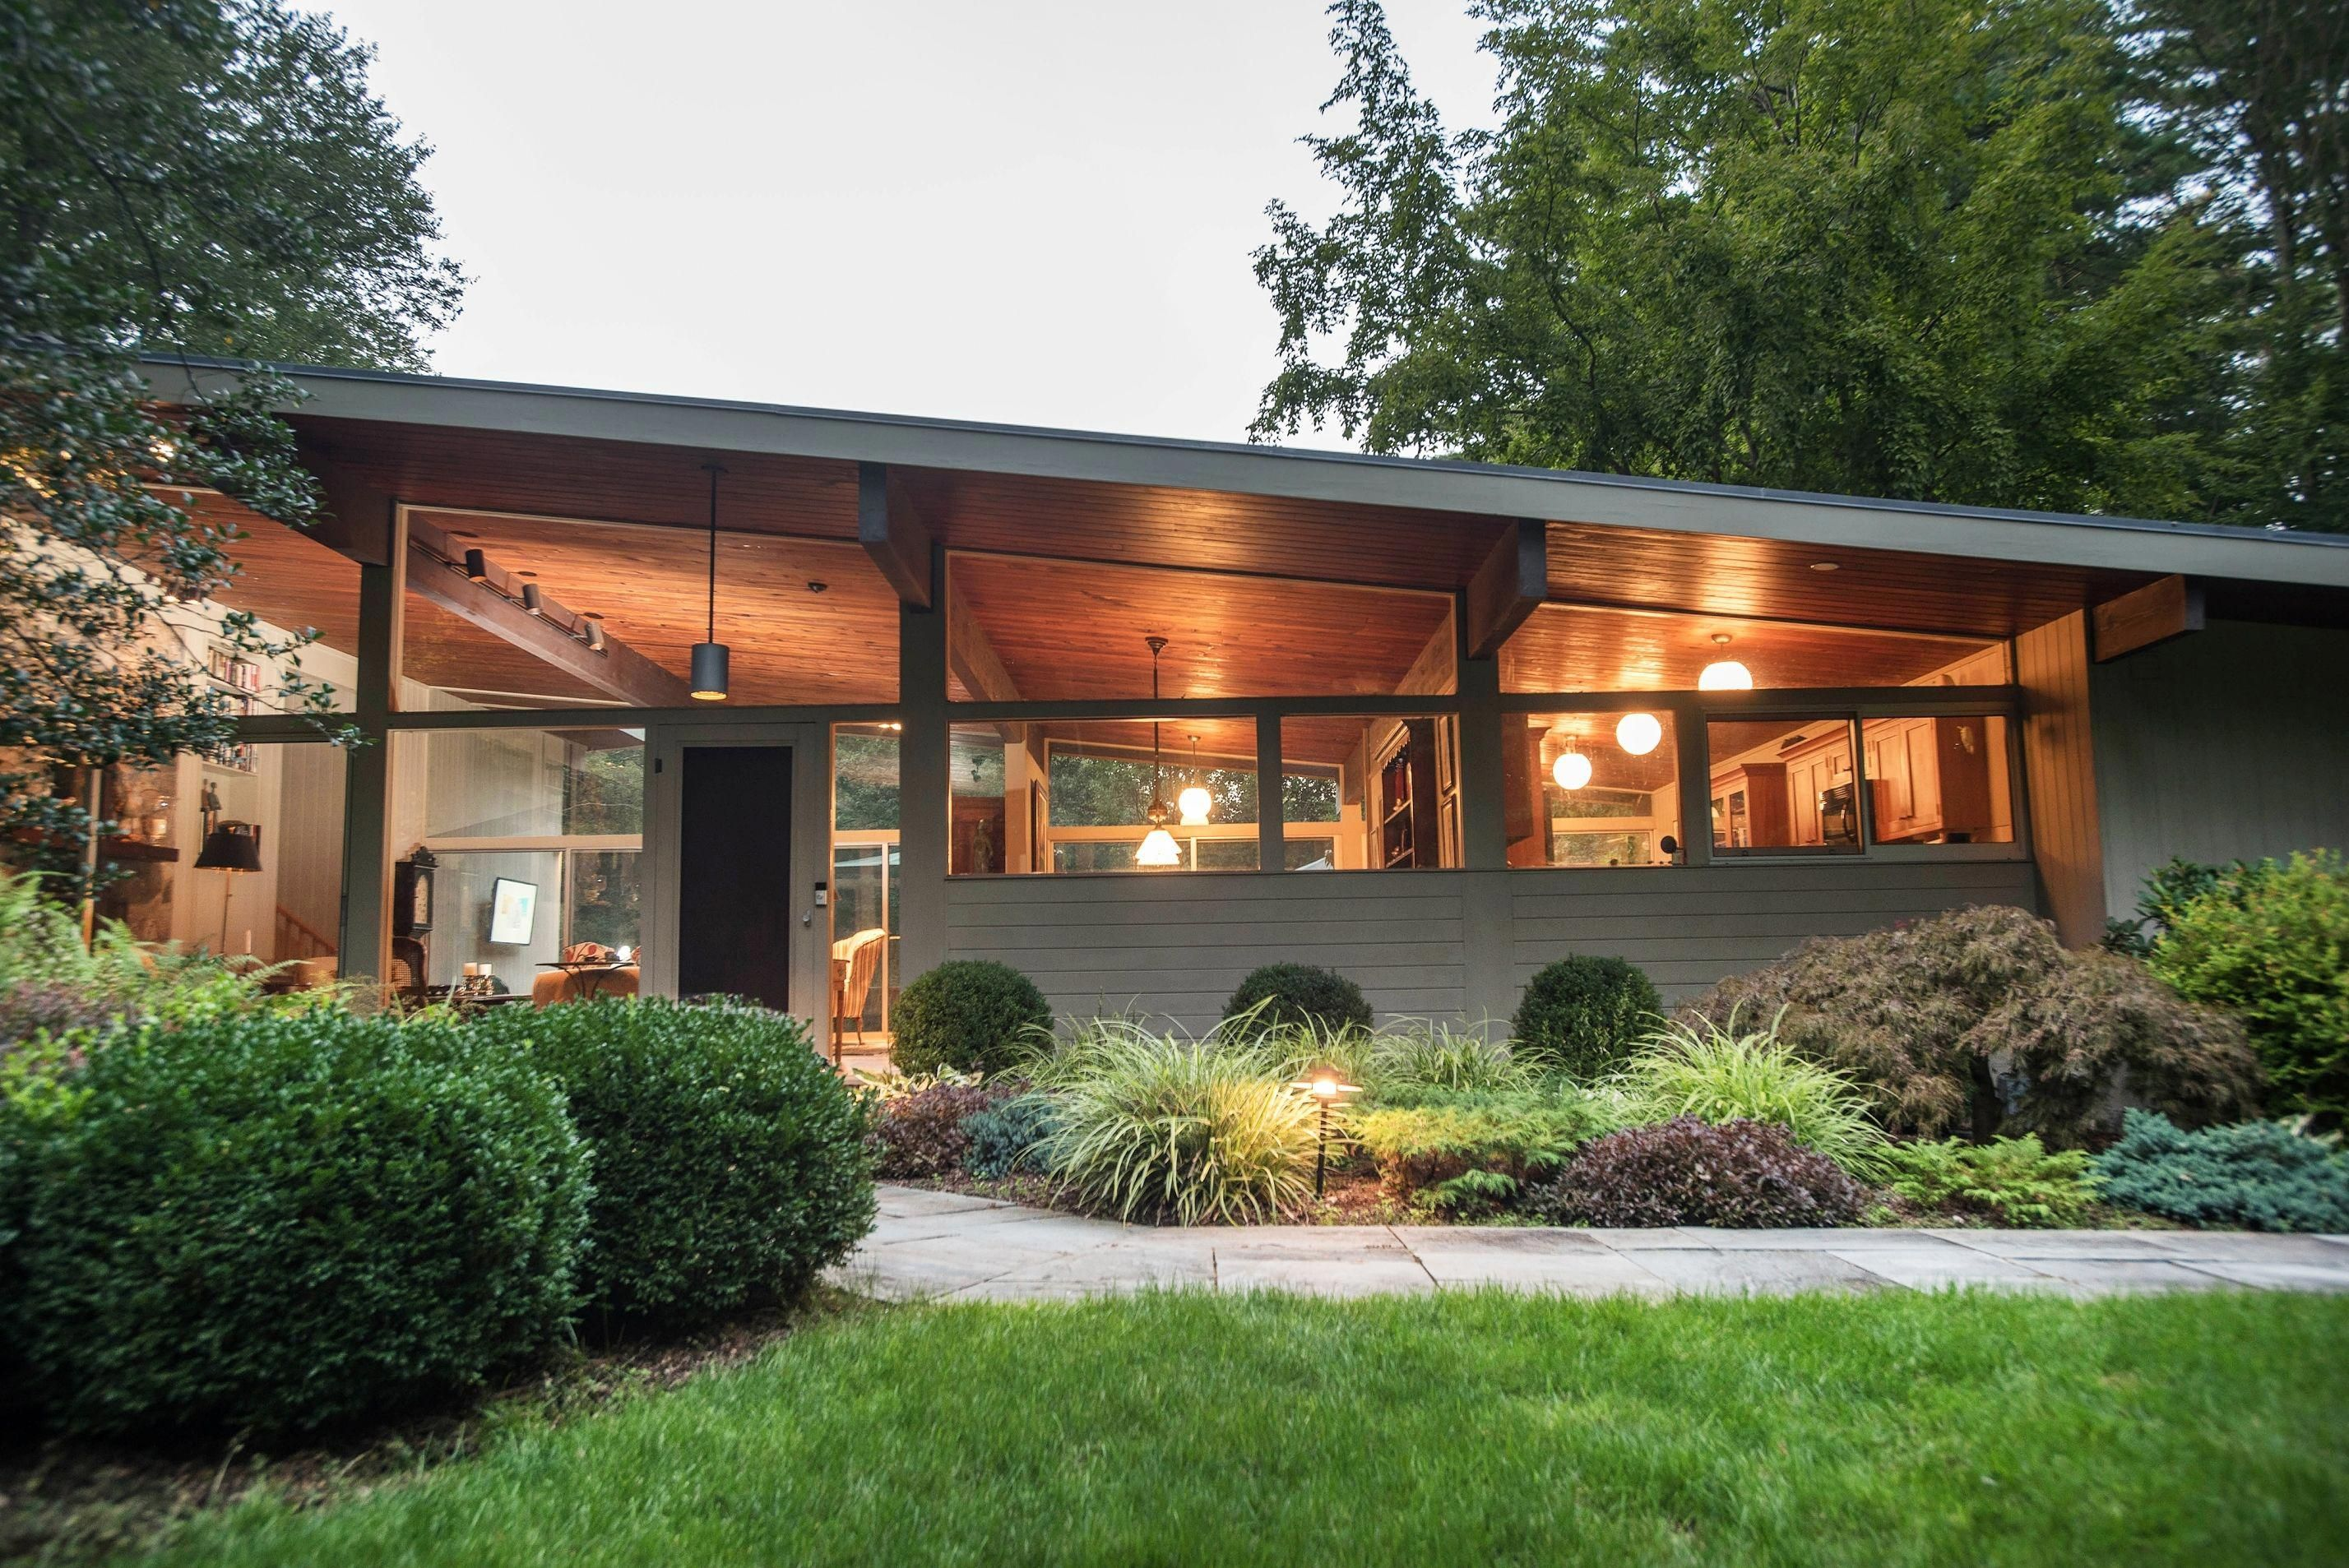 The Angled Roof Of The Post And Beam Construction Modernhomedesigns Mid Century Modern Exterior Mid Century Modern House Modern Exterior